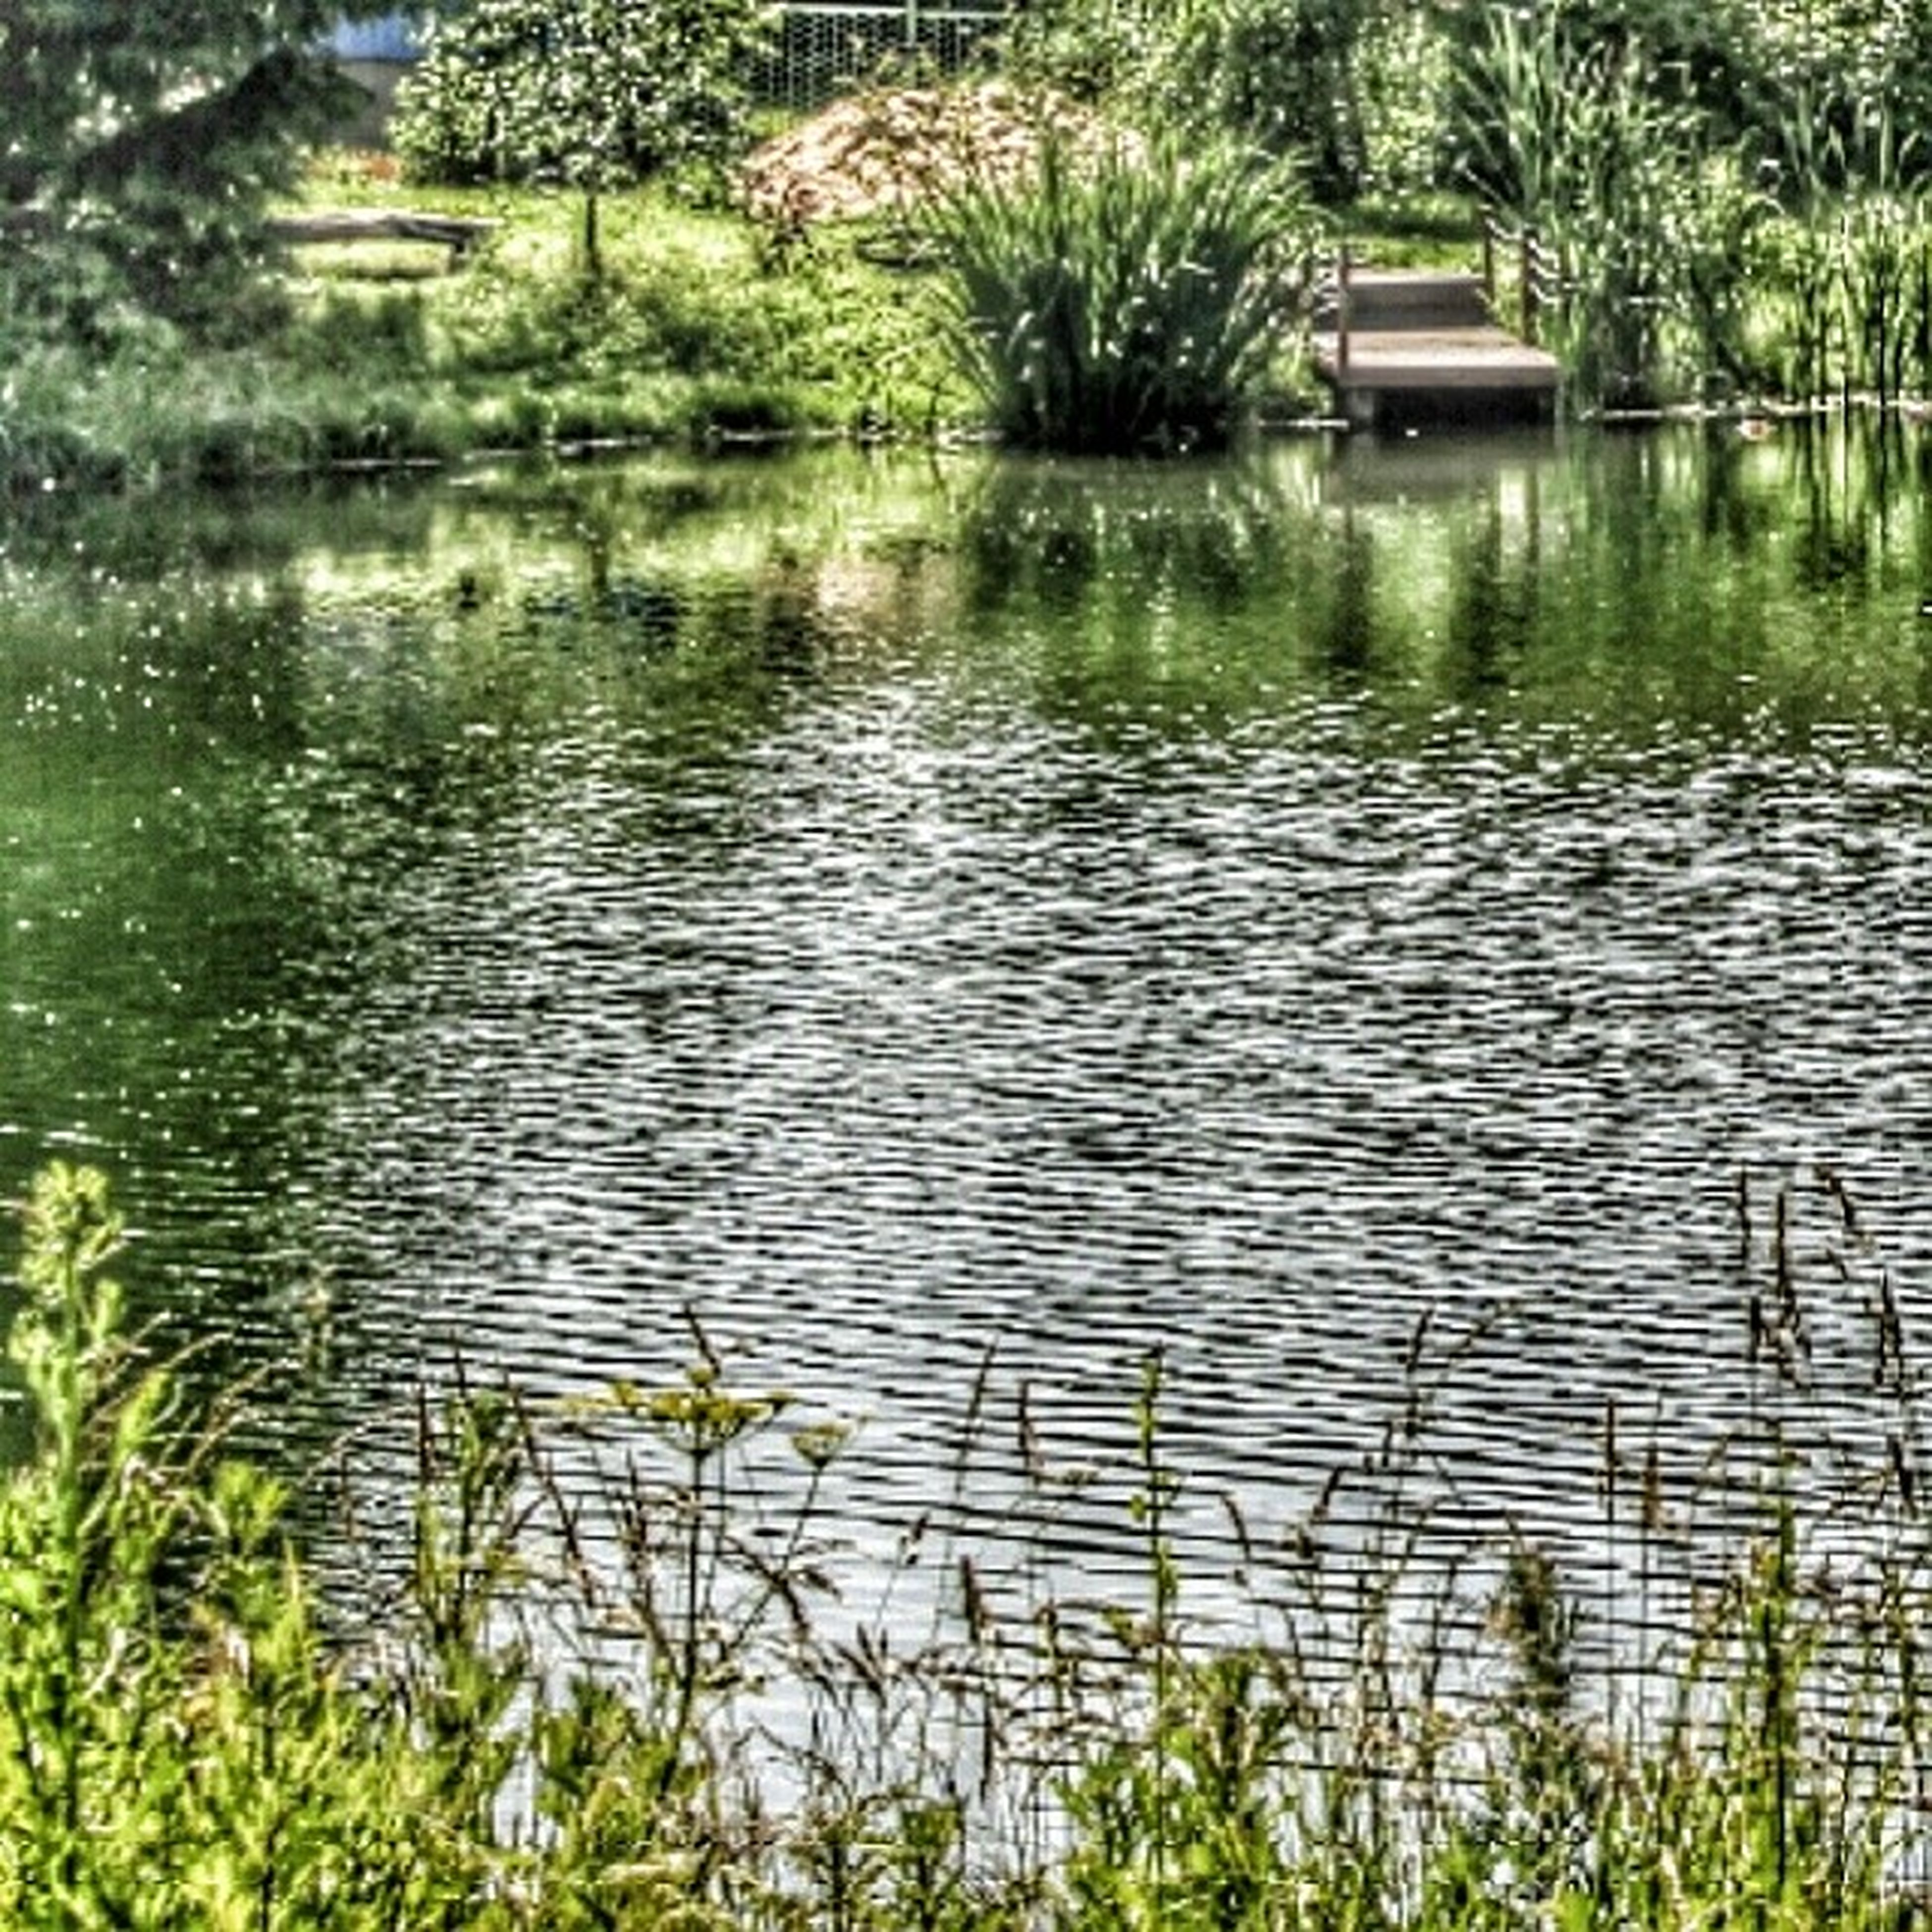 water, tree, growth, lake, plant, reflection, tranquility, nature, green color, beauty in nature, tranquil scene, river, grass, rippled, scenics, branch, outdoors, no people, waterfront, day